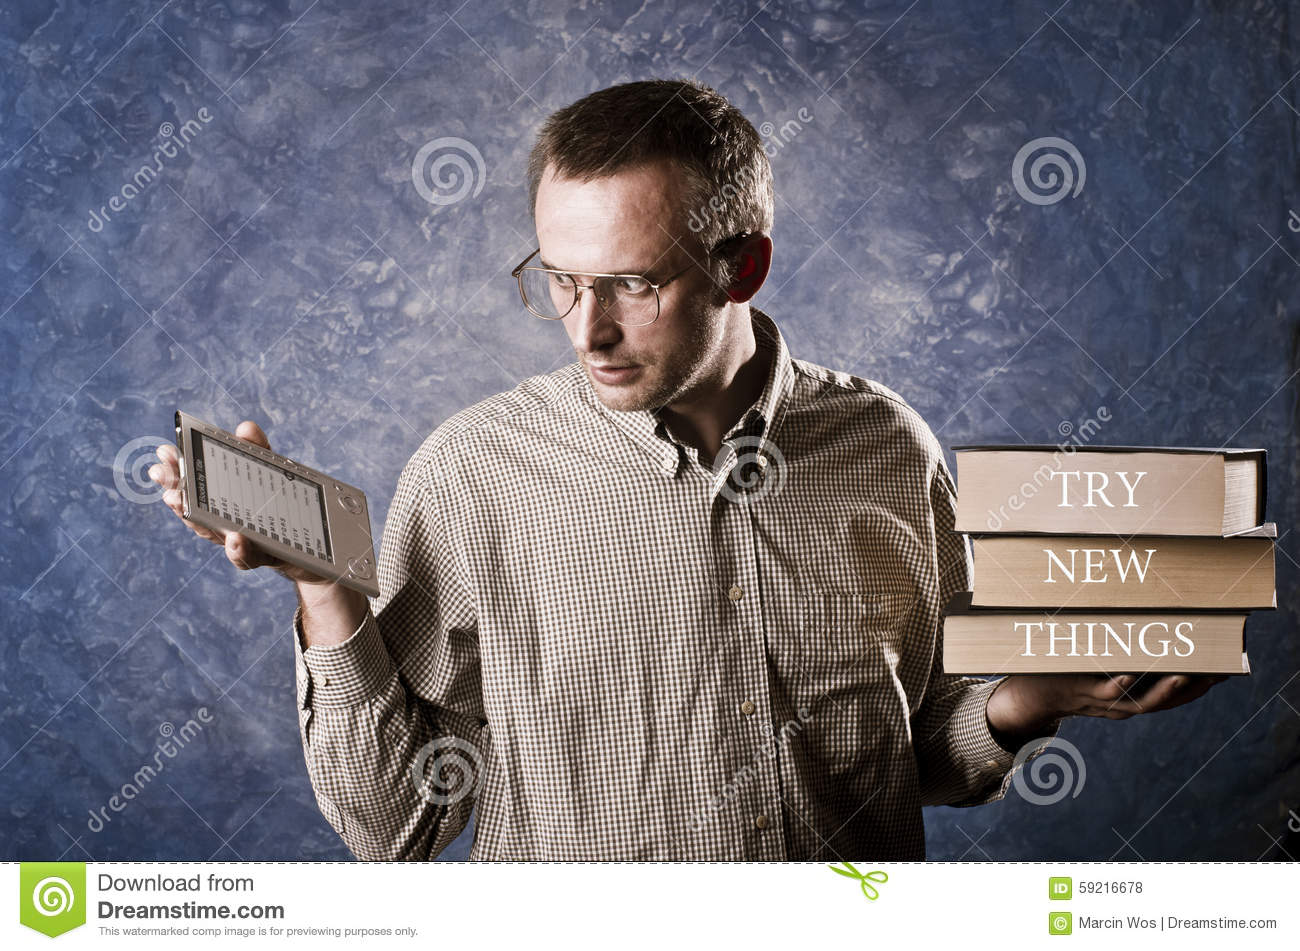 Man being focused on light and handy ebook reader, holding heavy books in other hand, try new things written on books.